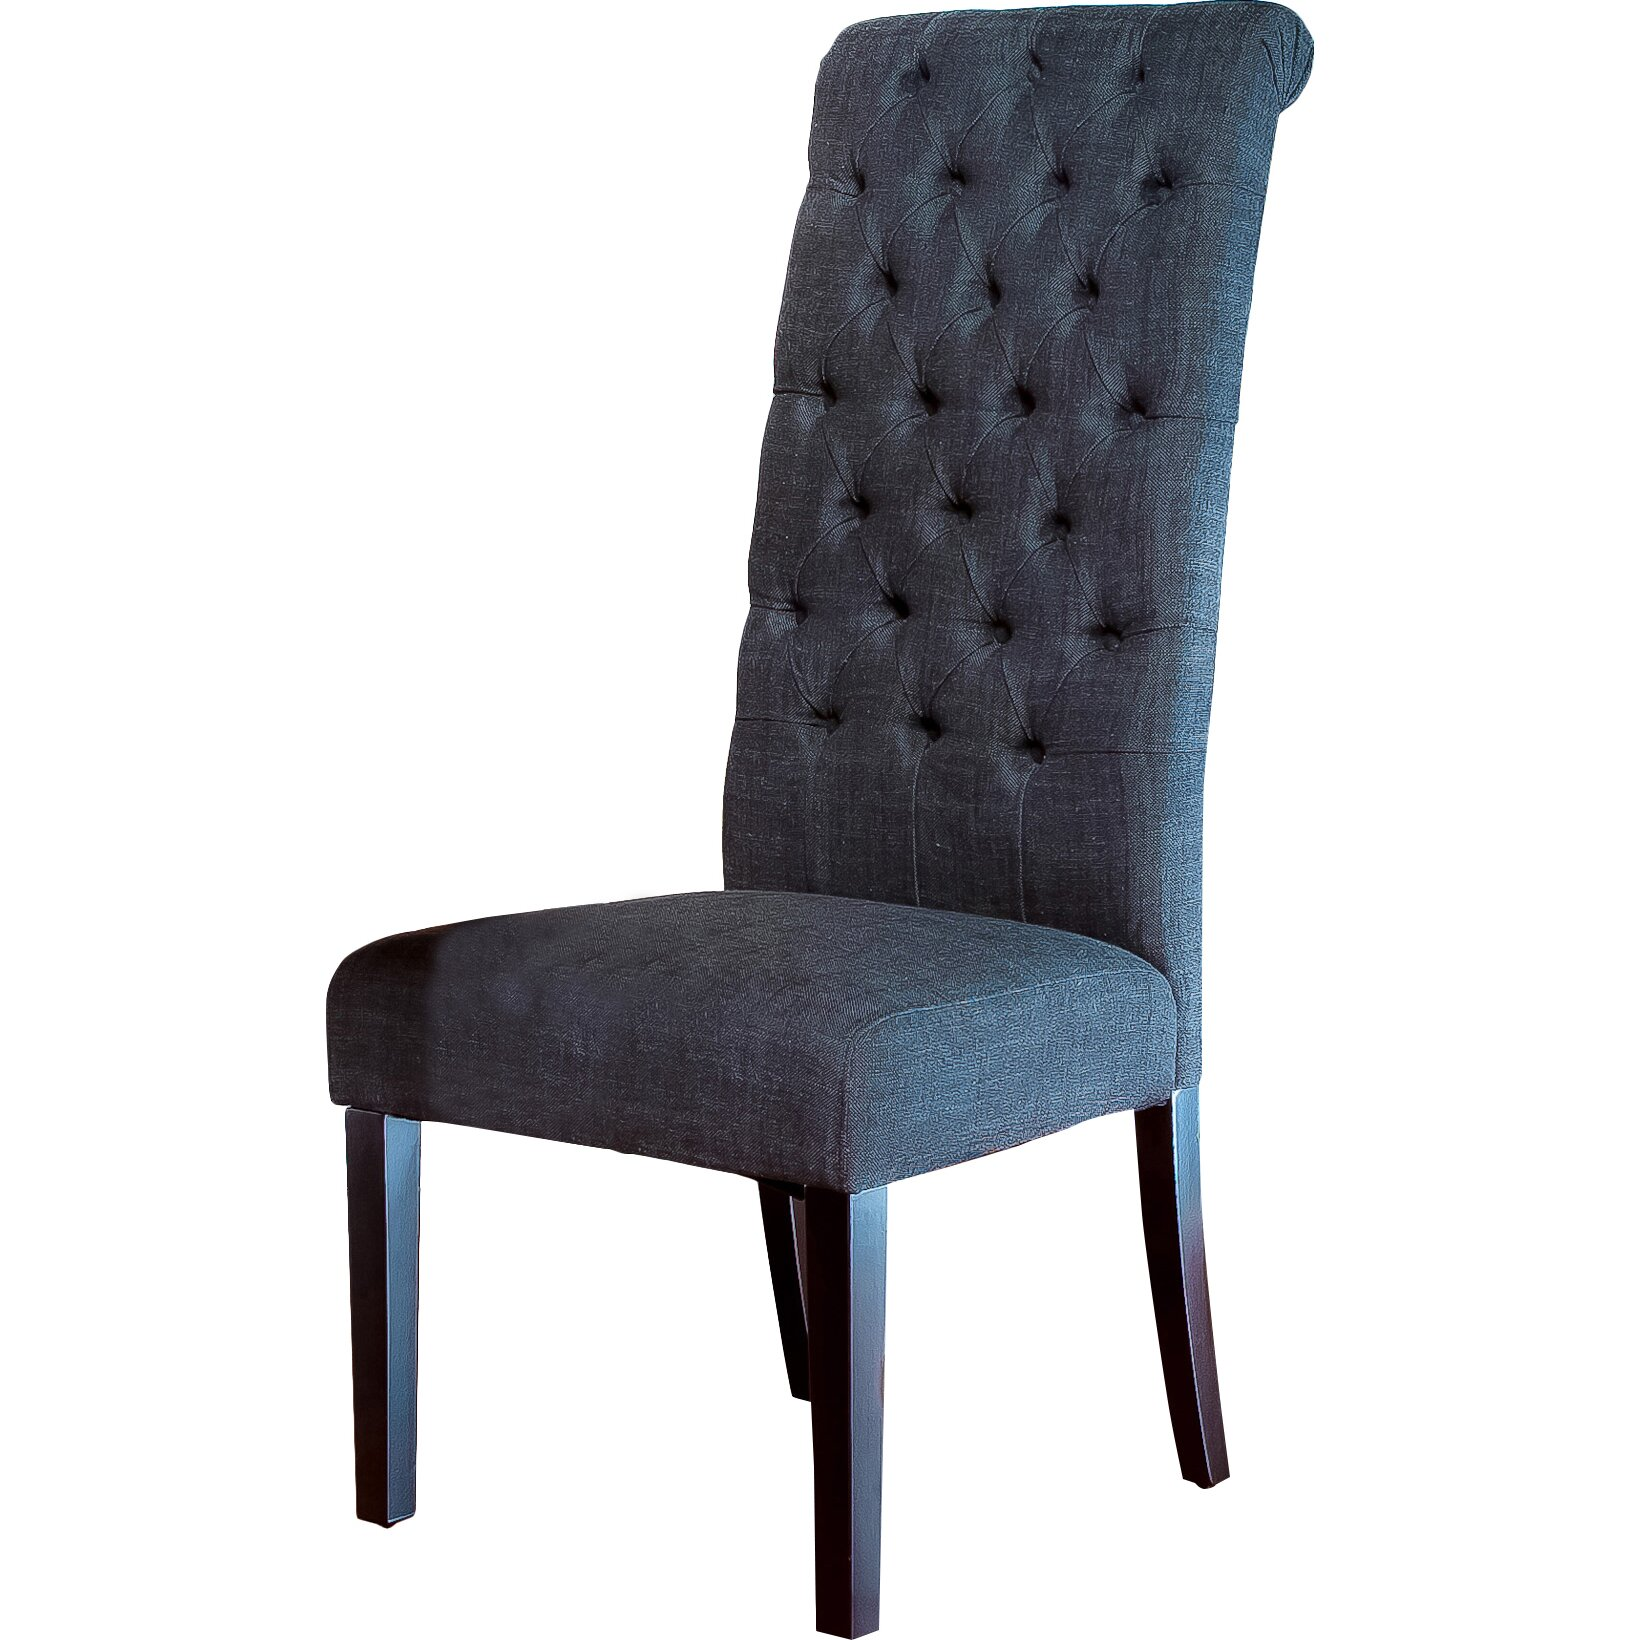 Charlton Home Estbury Tall Tufted Upholstered Dining Chair Reviews Wa